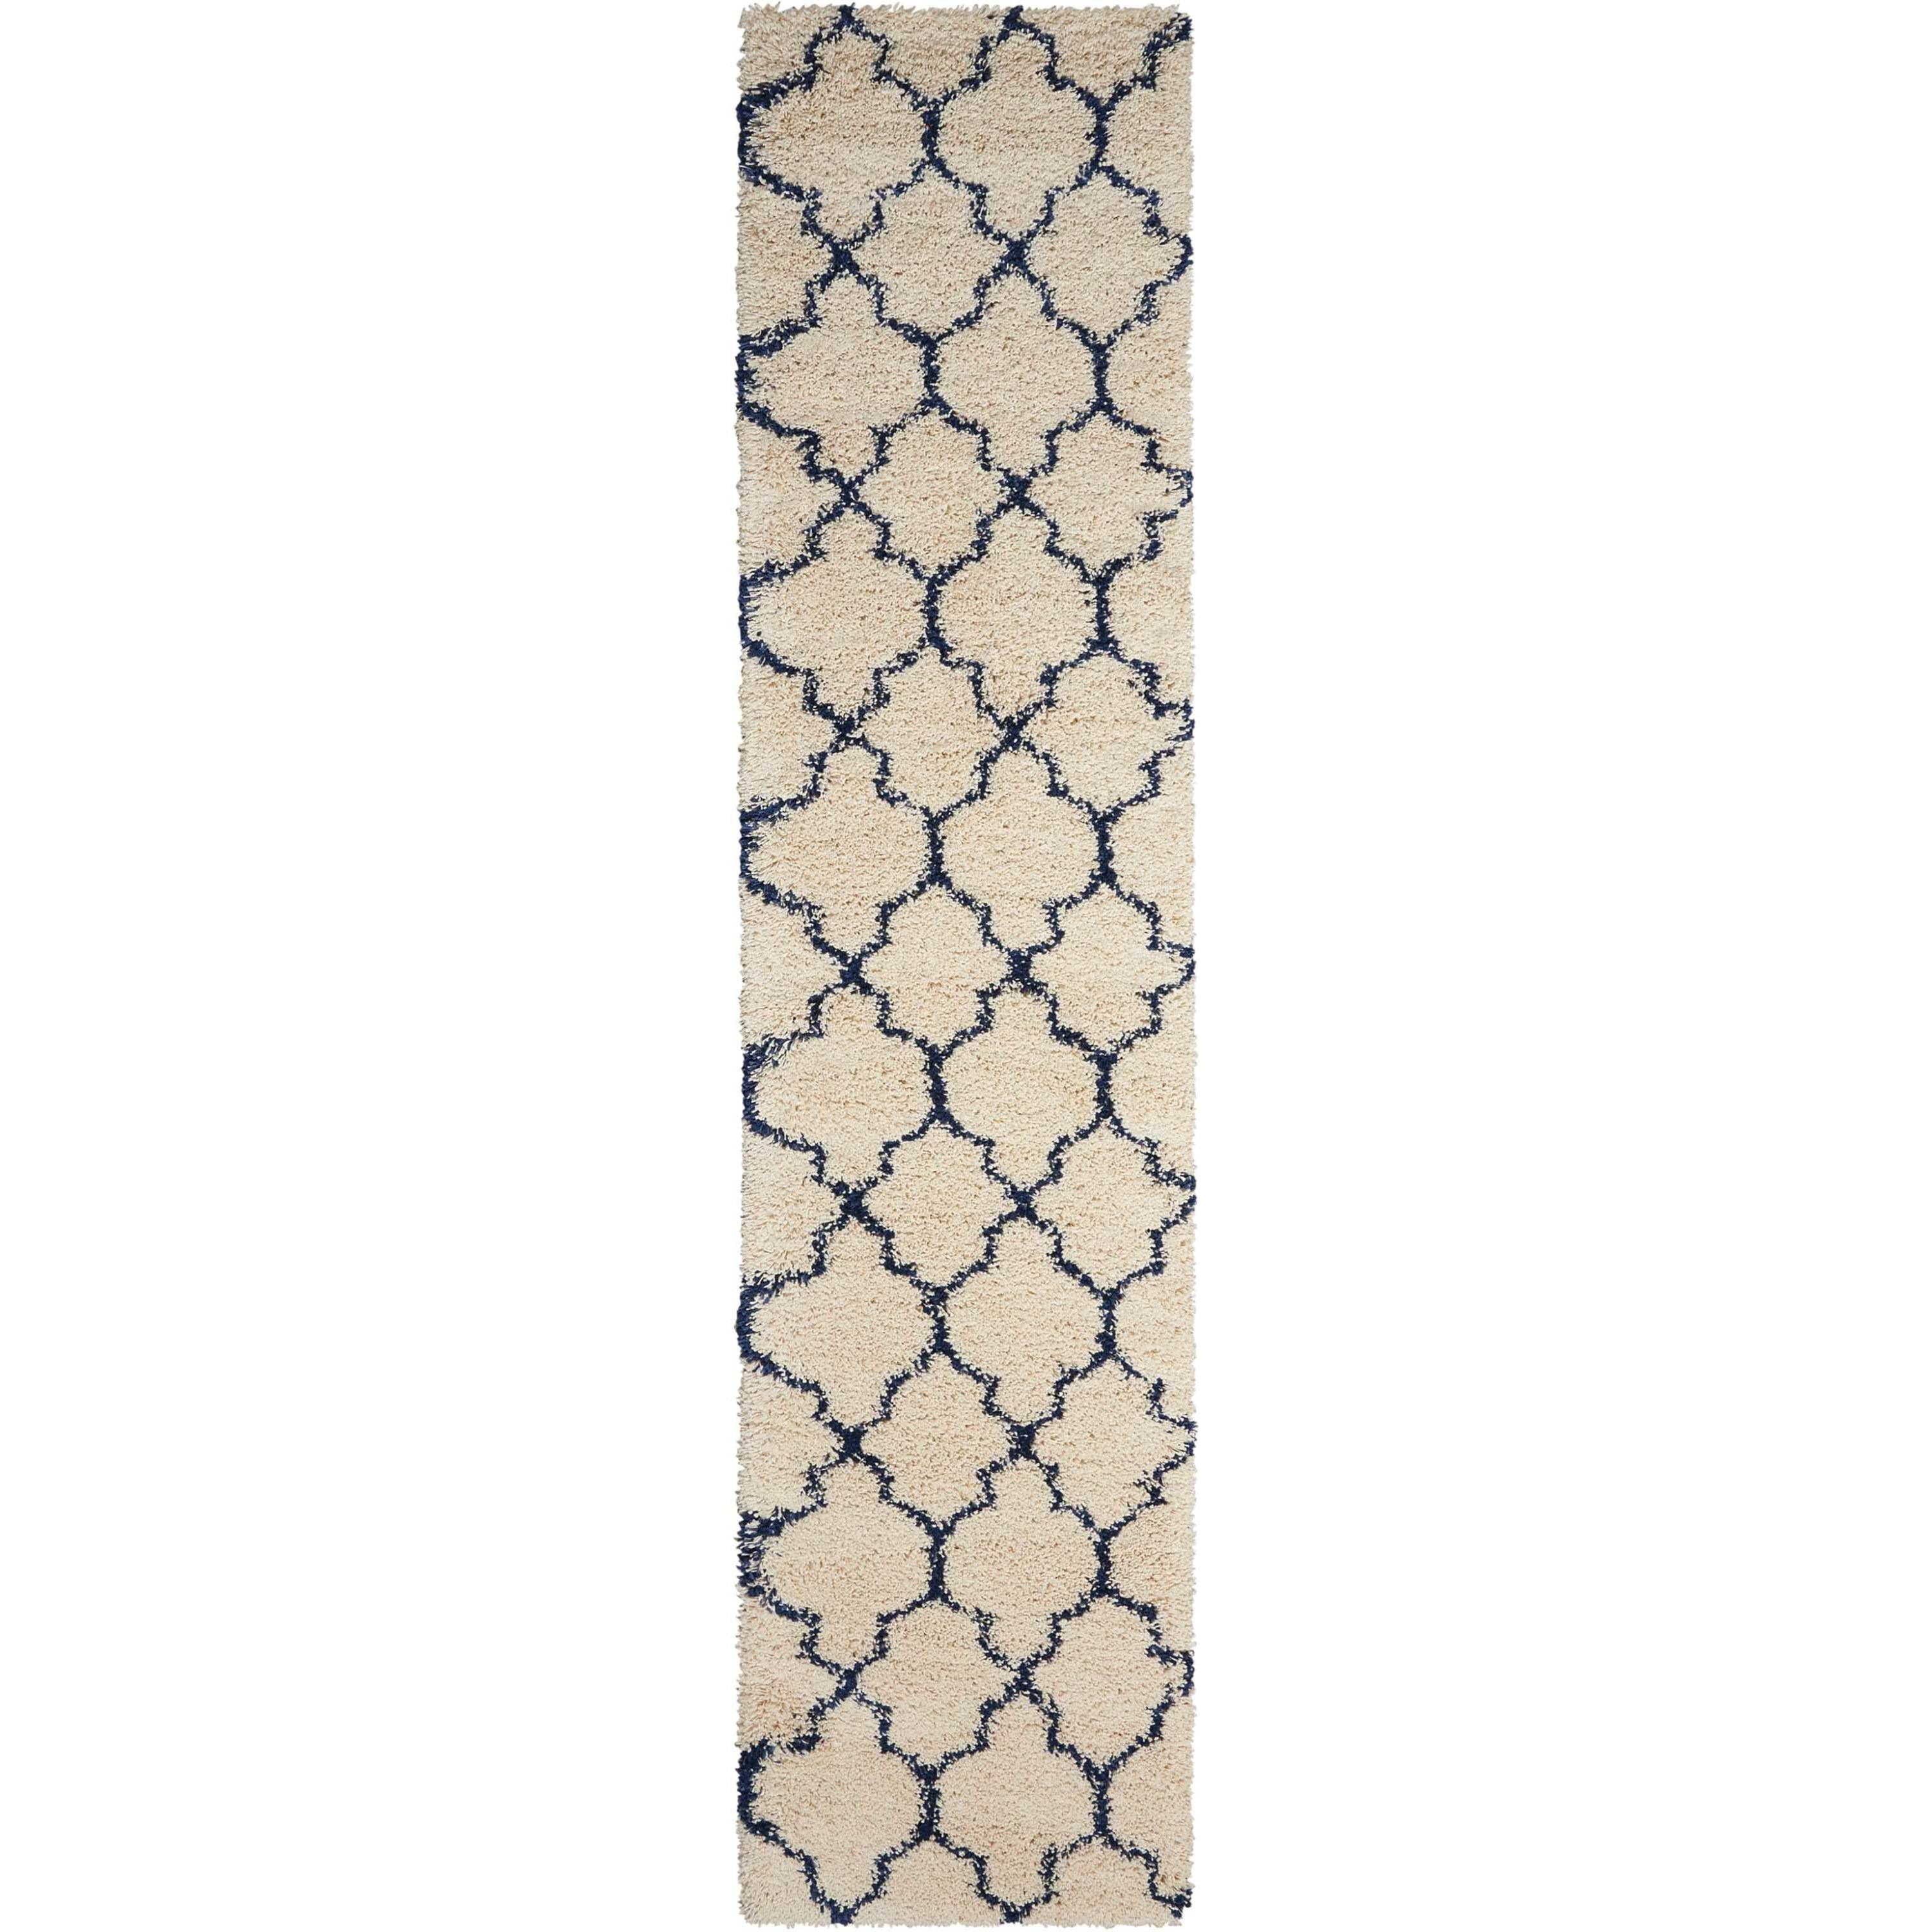 Amore Amore AMOR2 Blue and Ivory 10' Runner  Hallw by Nourison at Sprintz Furniture